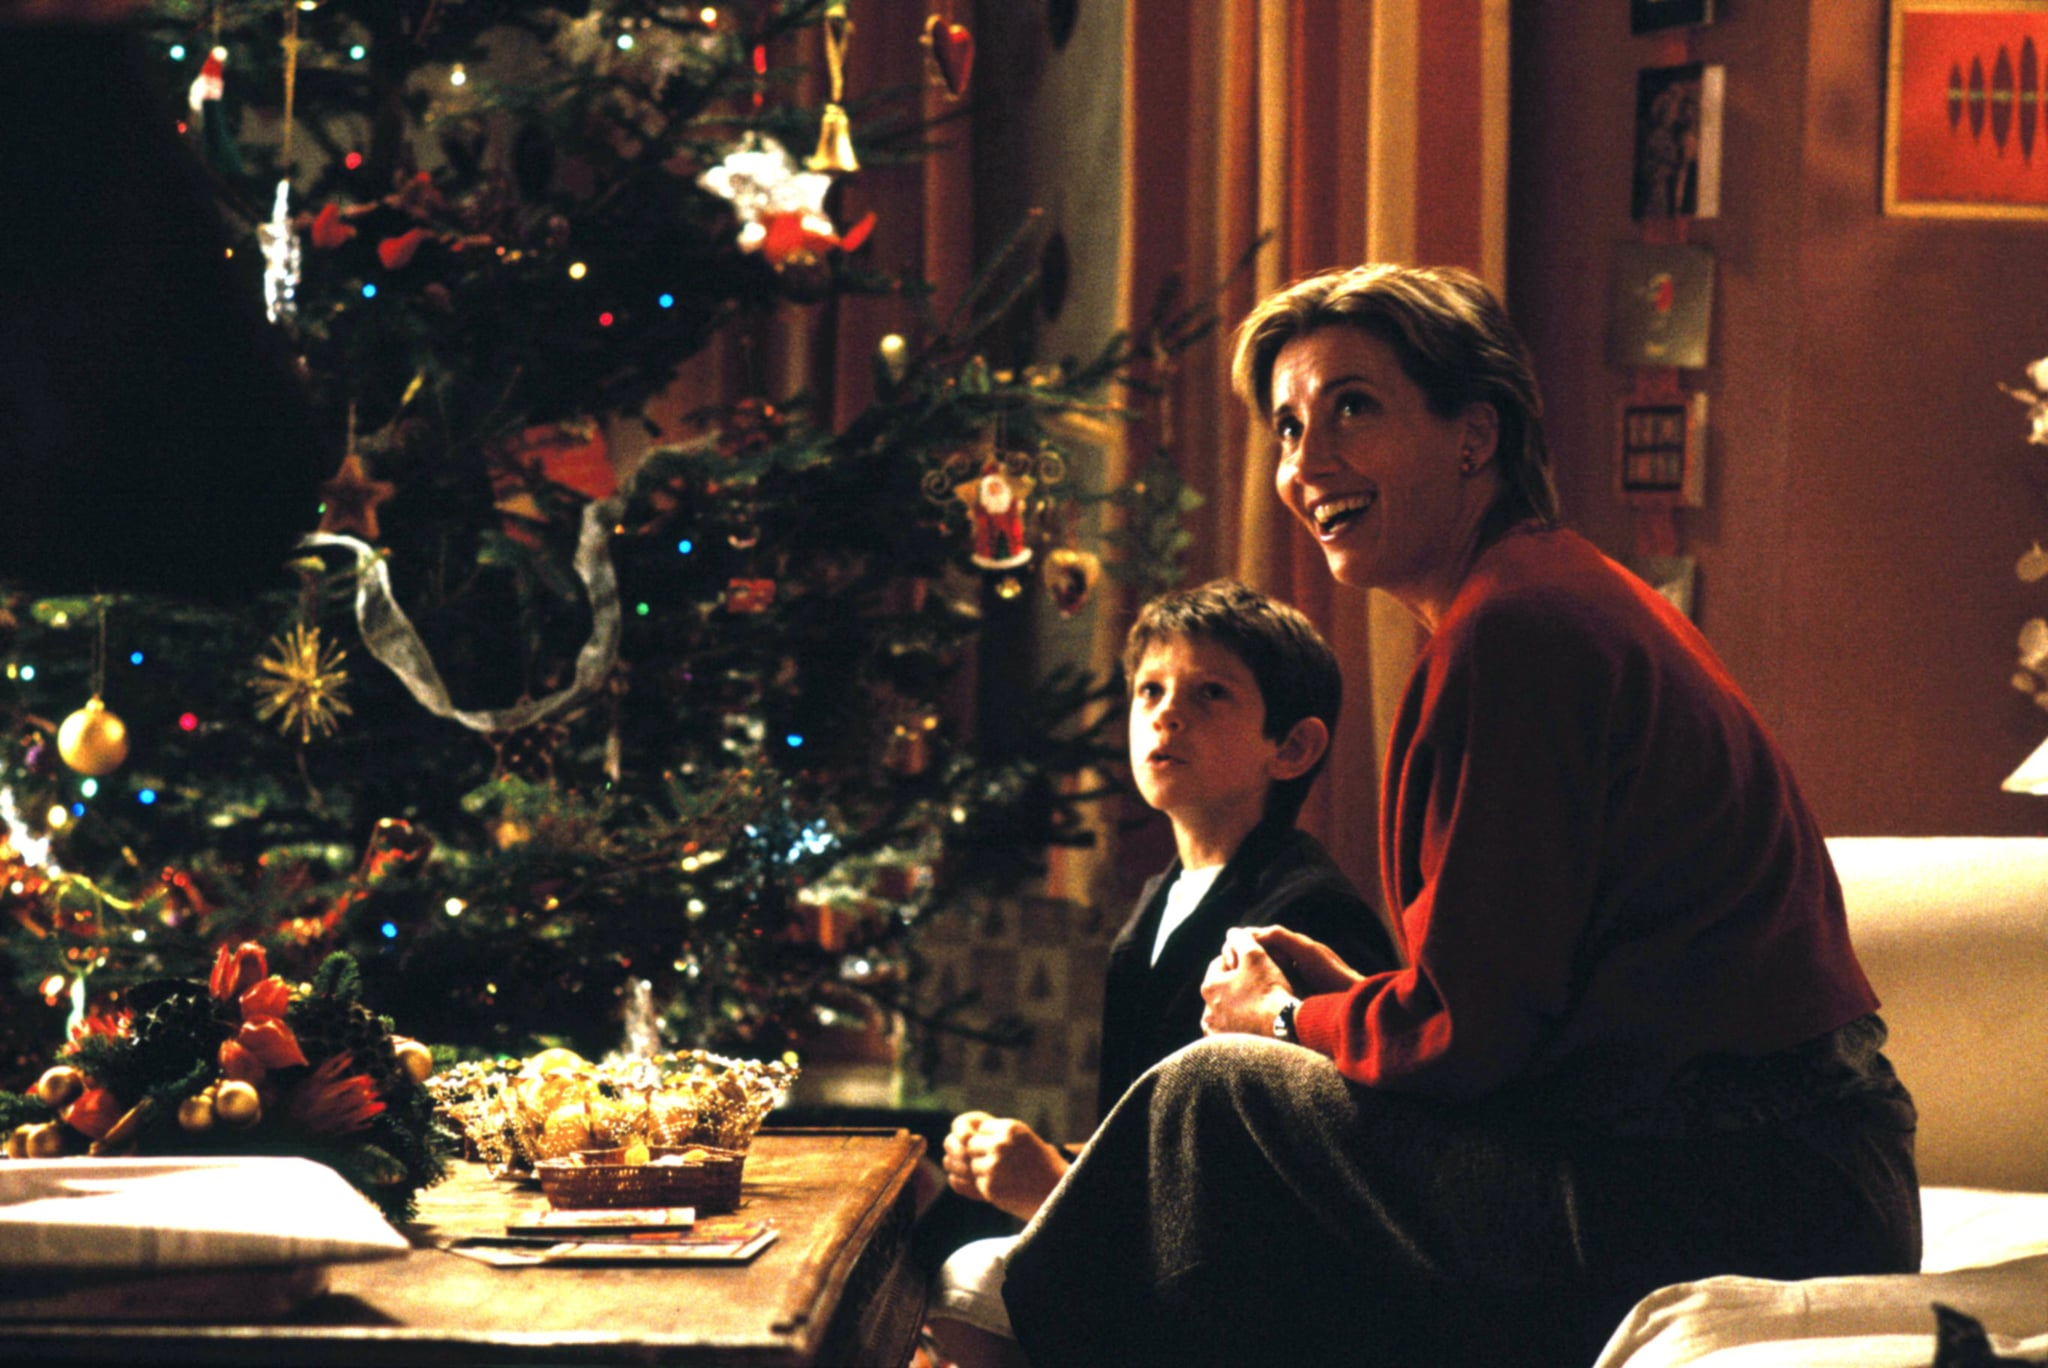 LOVE ACTUALLY, William Wadham, Emma Thompson, 2003, (c) Universal/courtesy Everett Collection